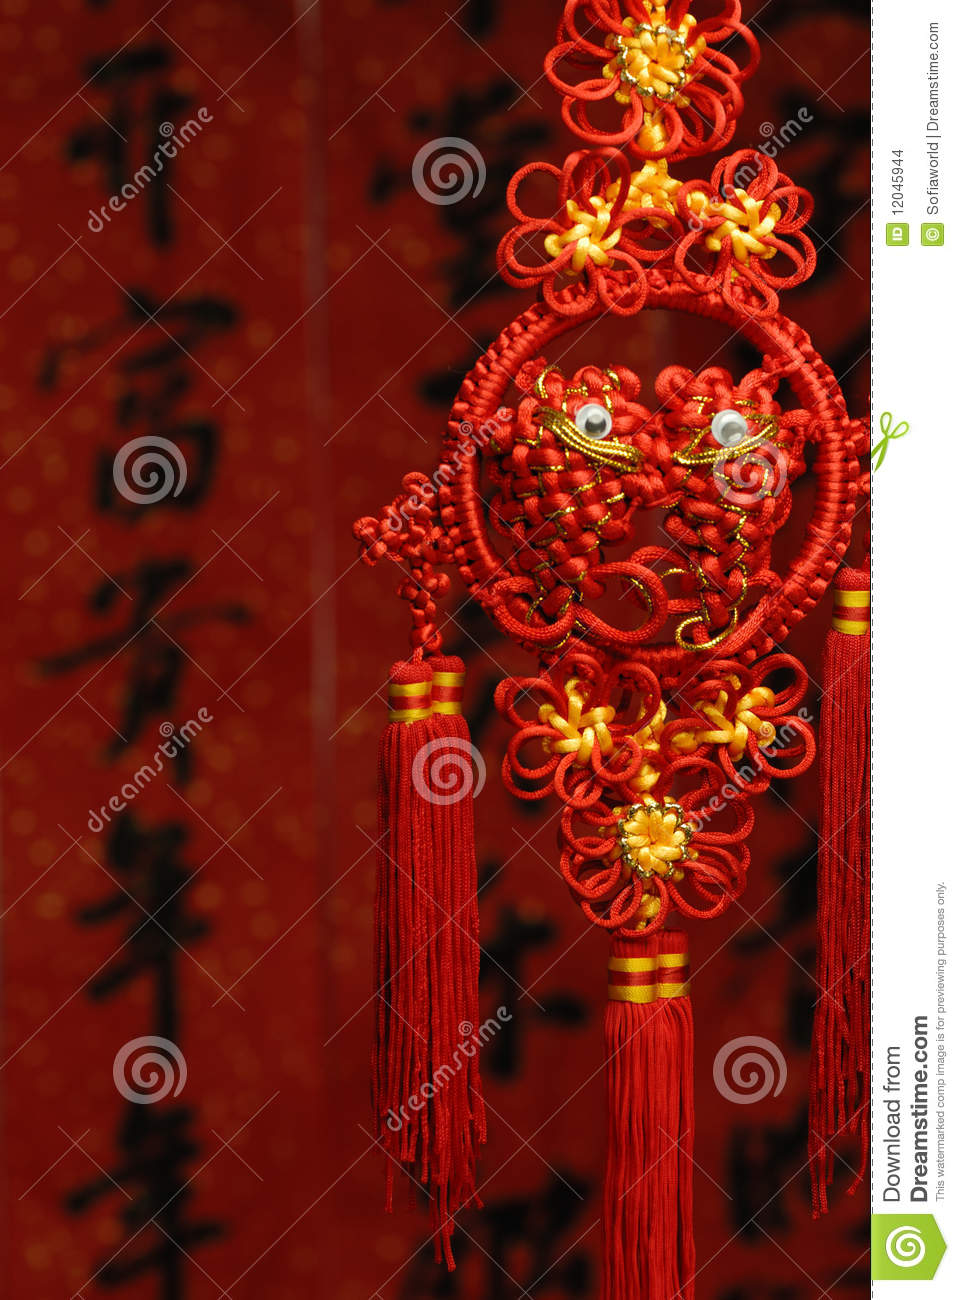 Chinese lunar new year decoration stock images image - Lunar new year decorations ...